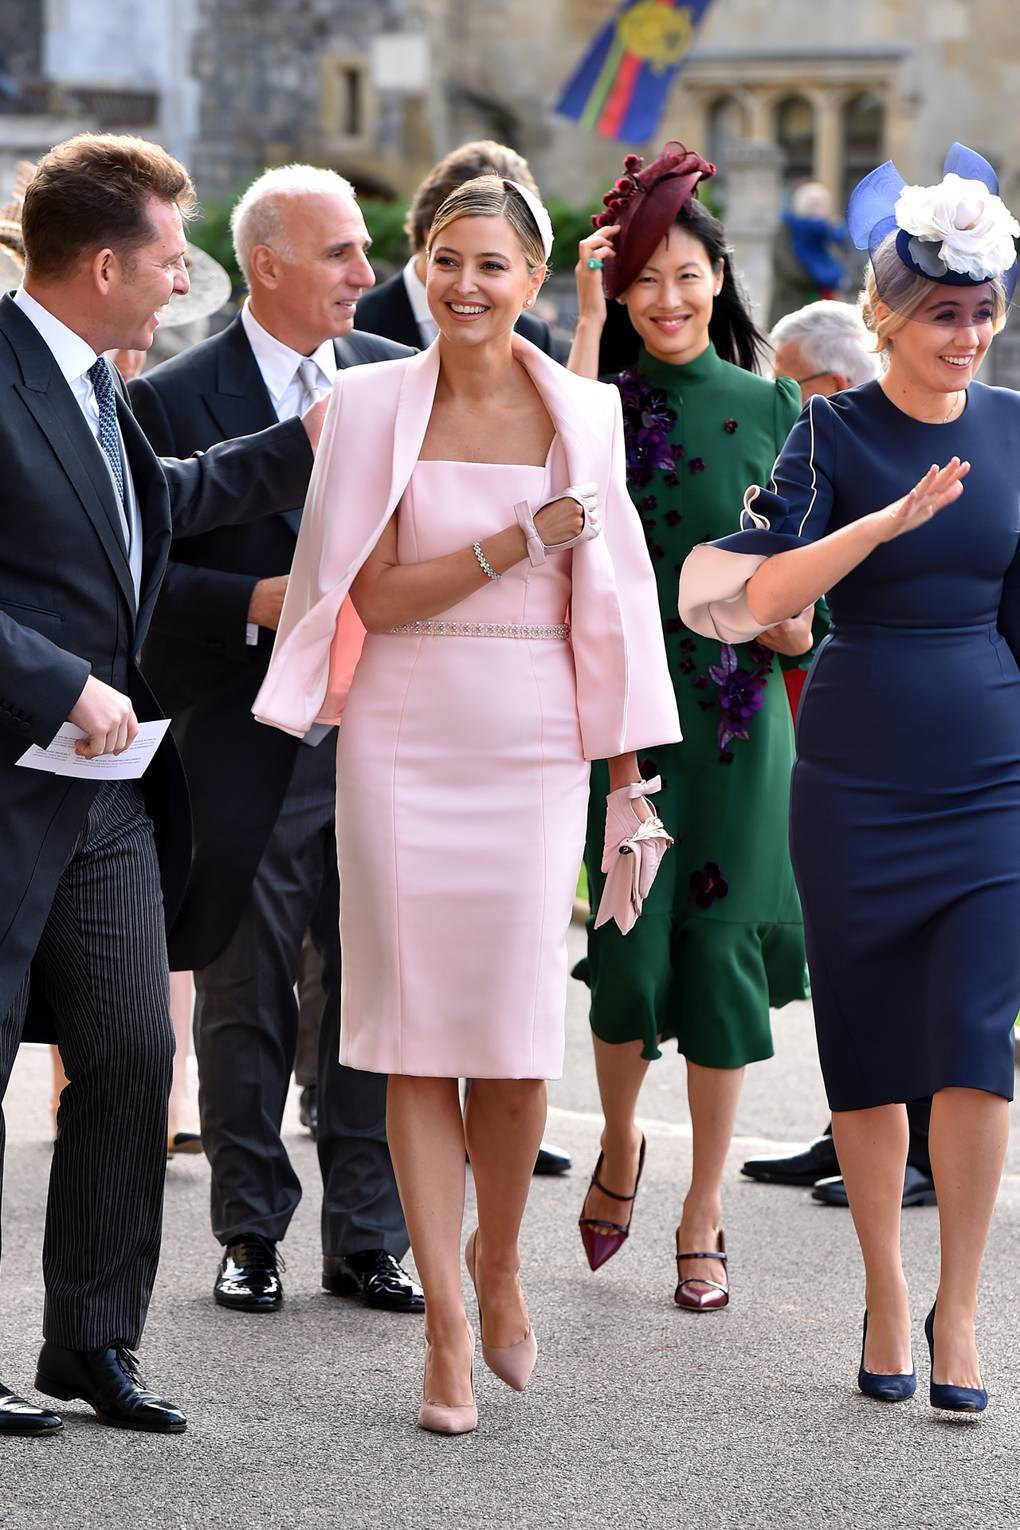 Royal Wedding Guests.Princess Eugenie Royal Wedding Best Dressed Guests From